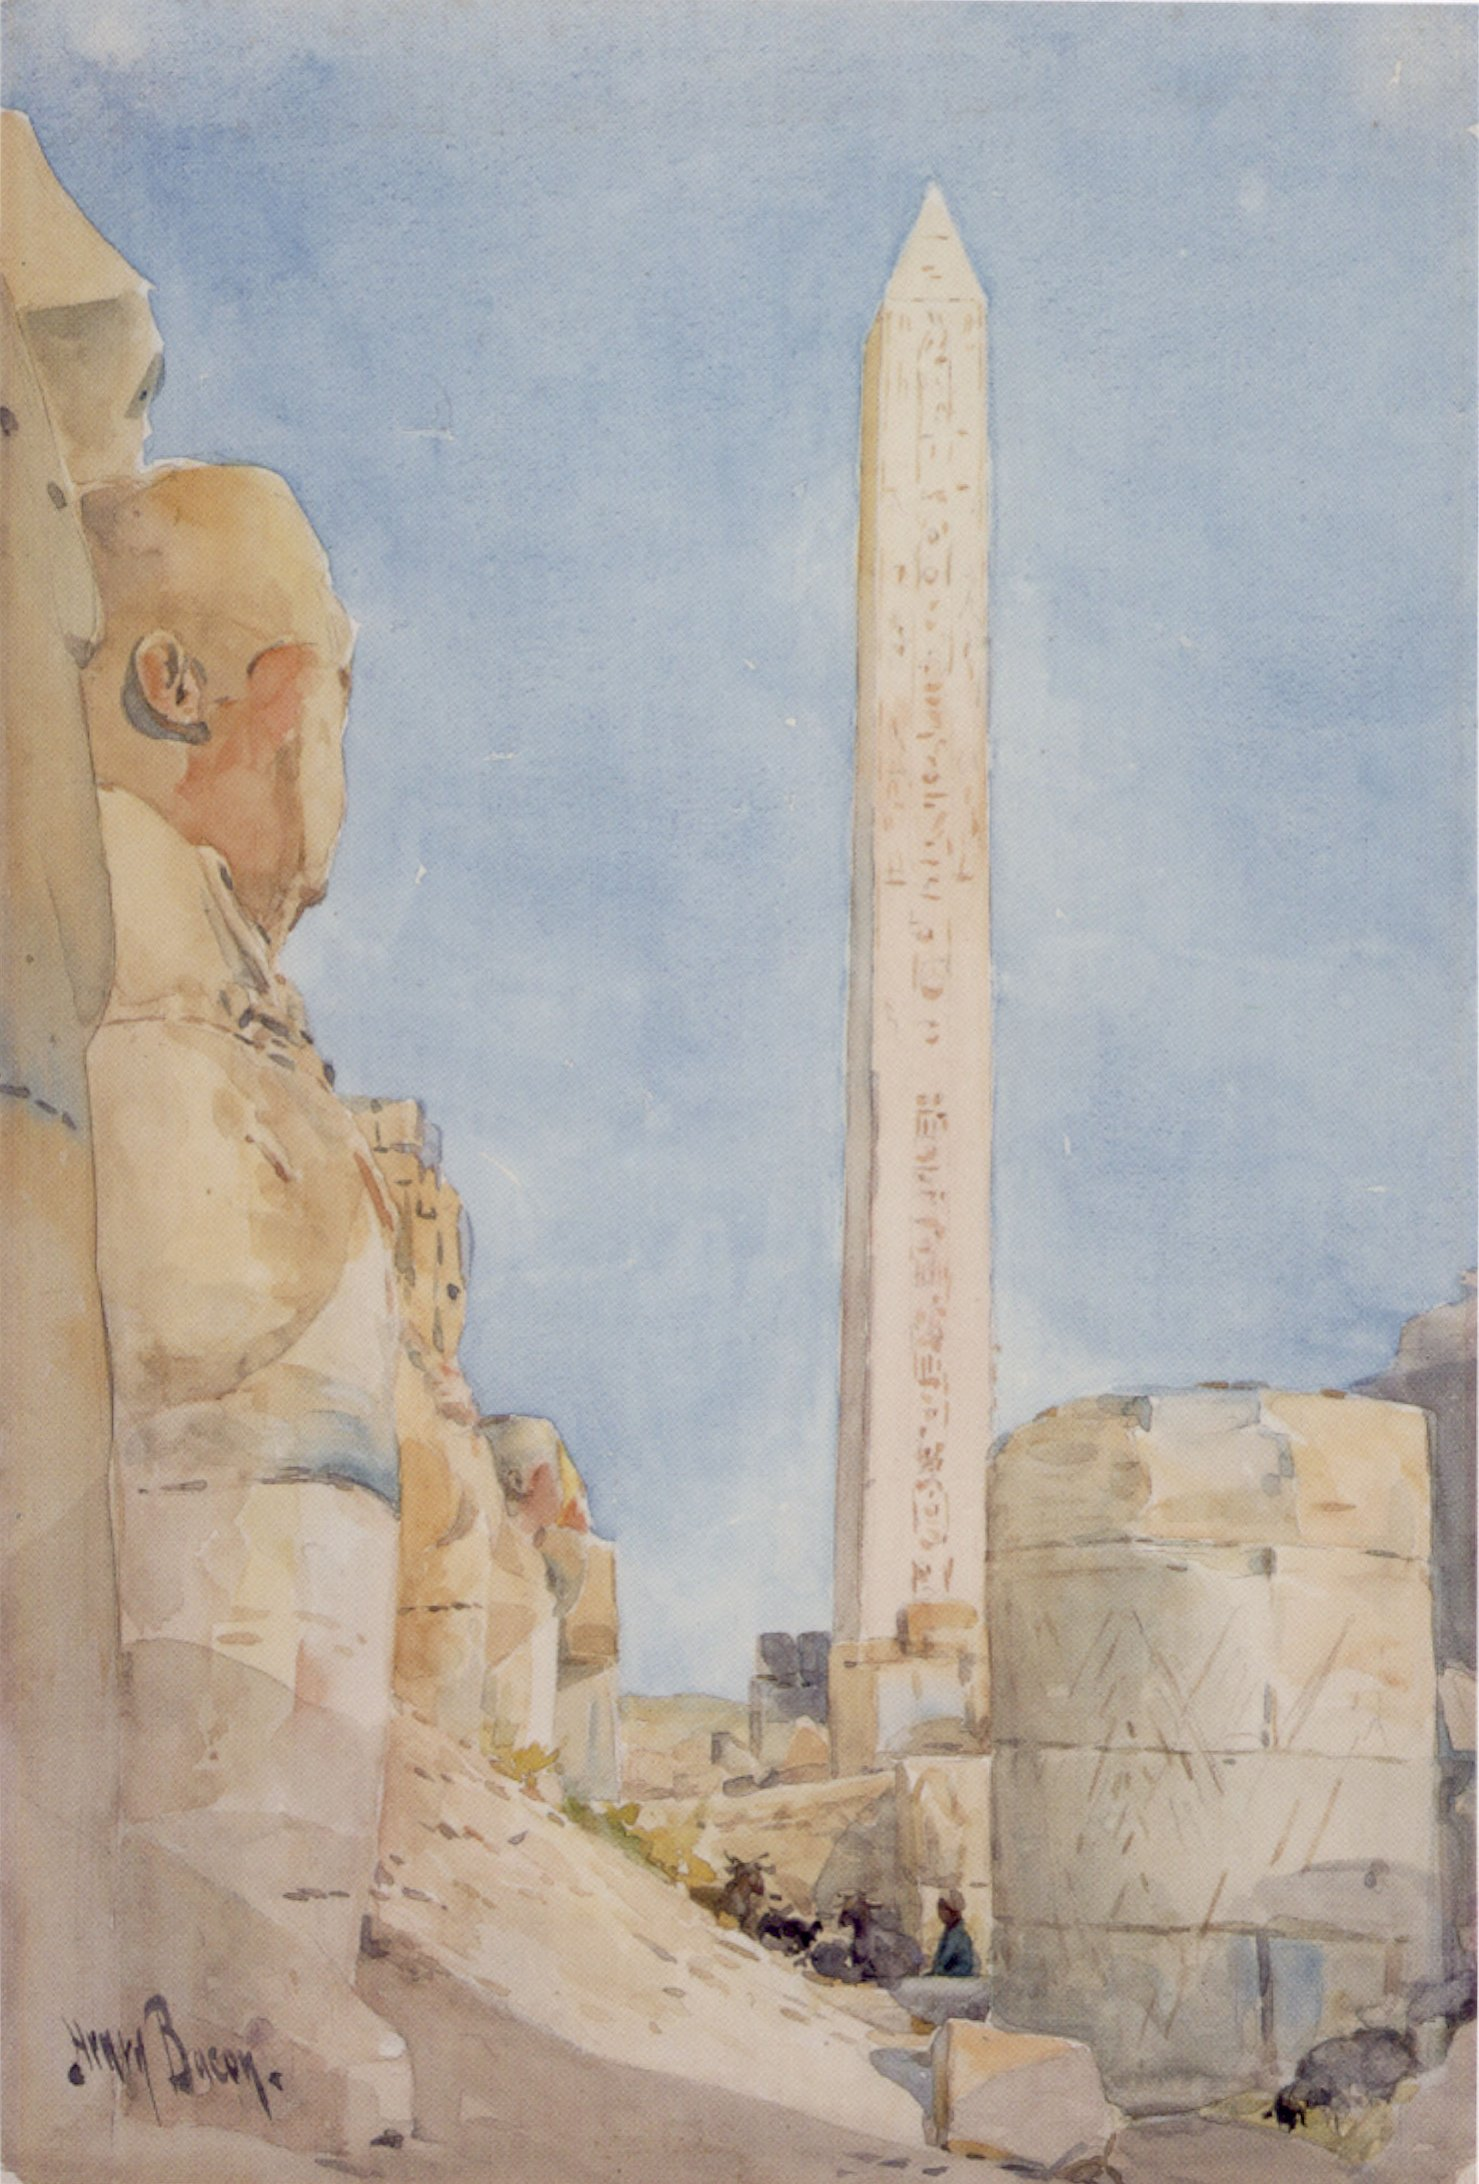 https://i1.wp.com/upload.wikimedia.org/wikipedia/commons/9/9e/Henry_A._Bacon_-_%27Obelisk--Karnak_in_1900%27,_watercolor_over_graphite_by_Henry_A._Bacon,_1900.jpg